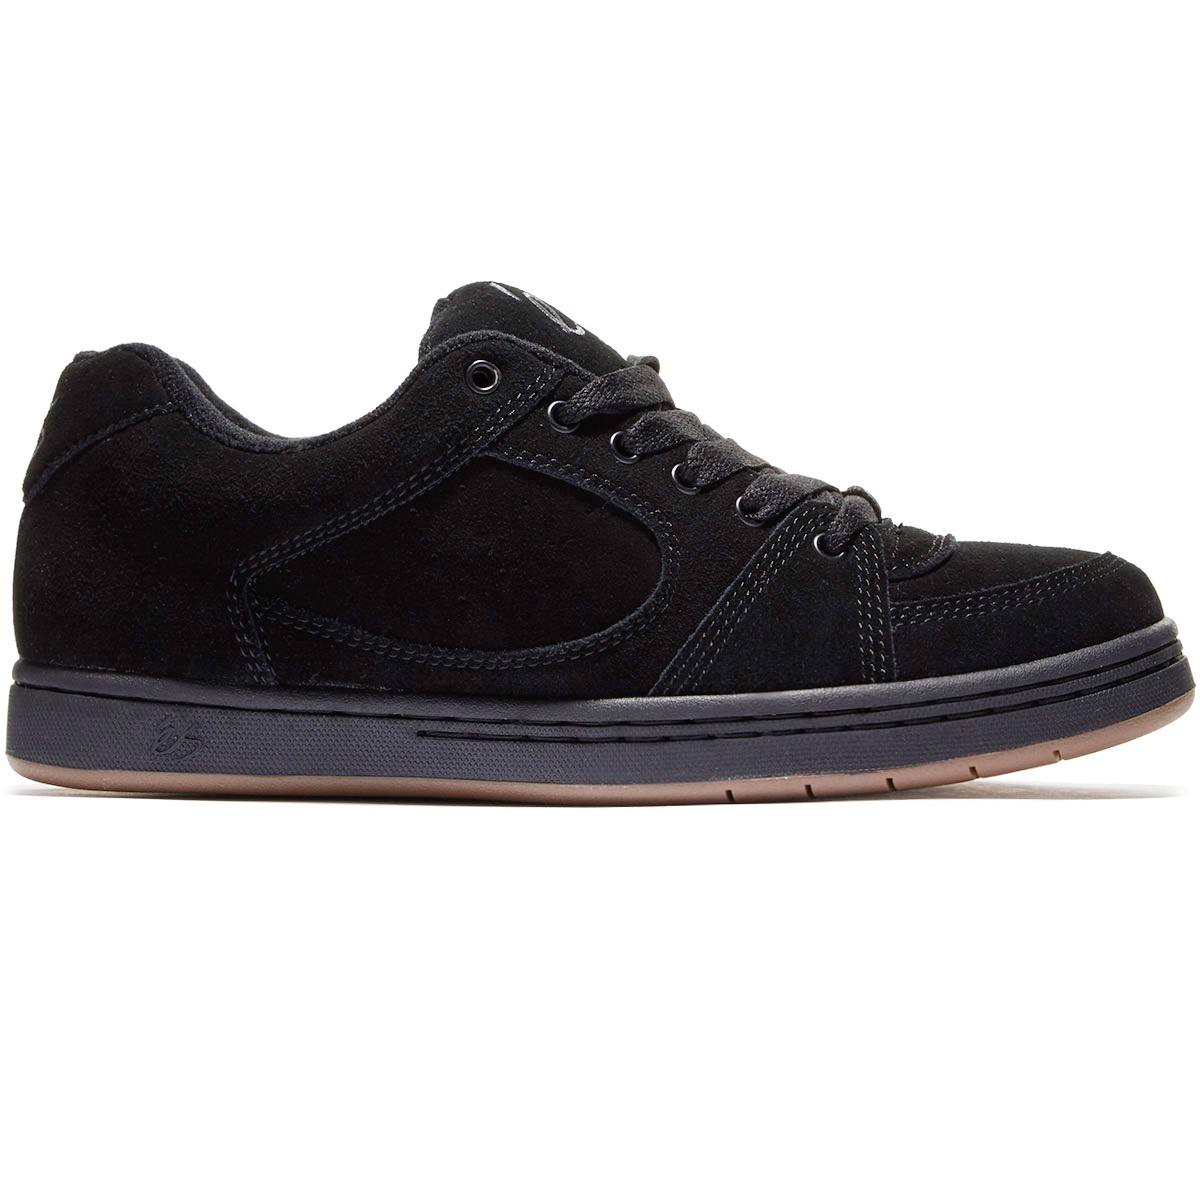 a310dd9f0f eS Accel OG Shoes - Black